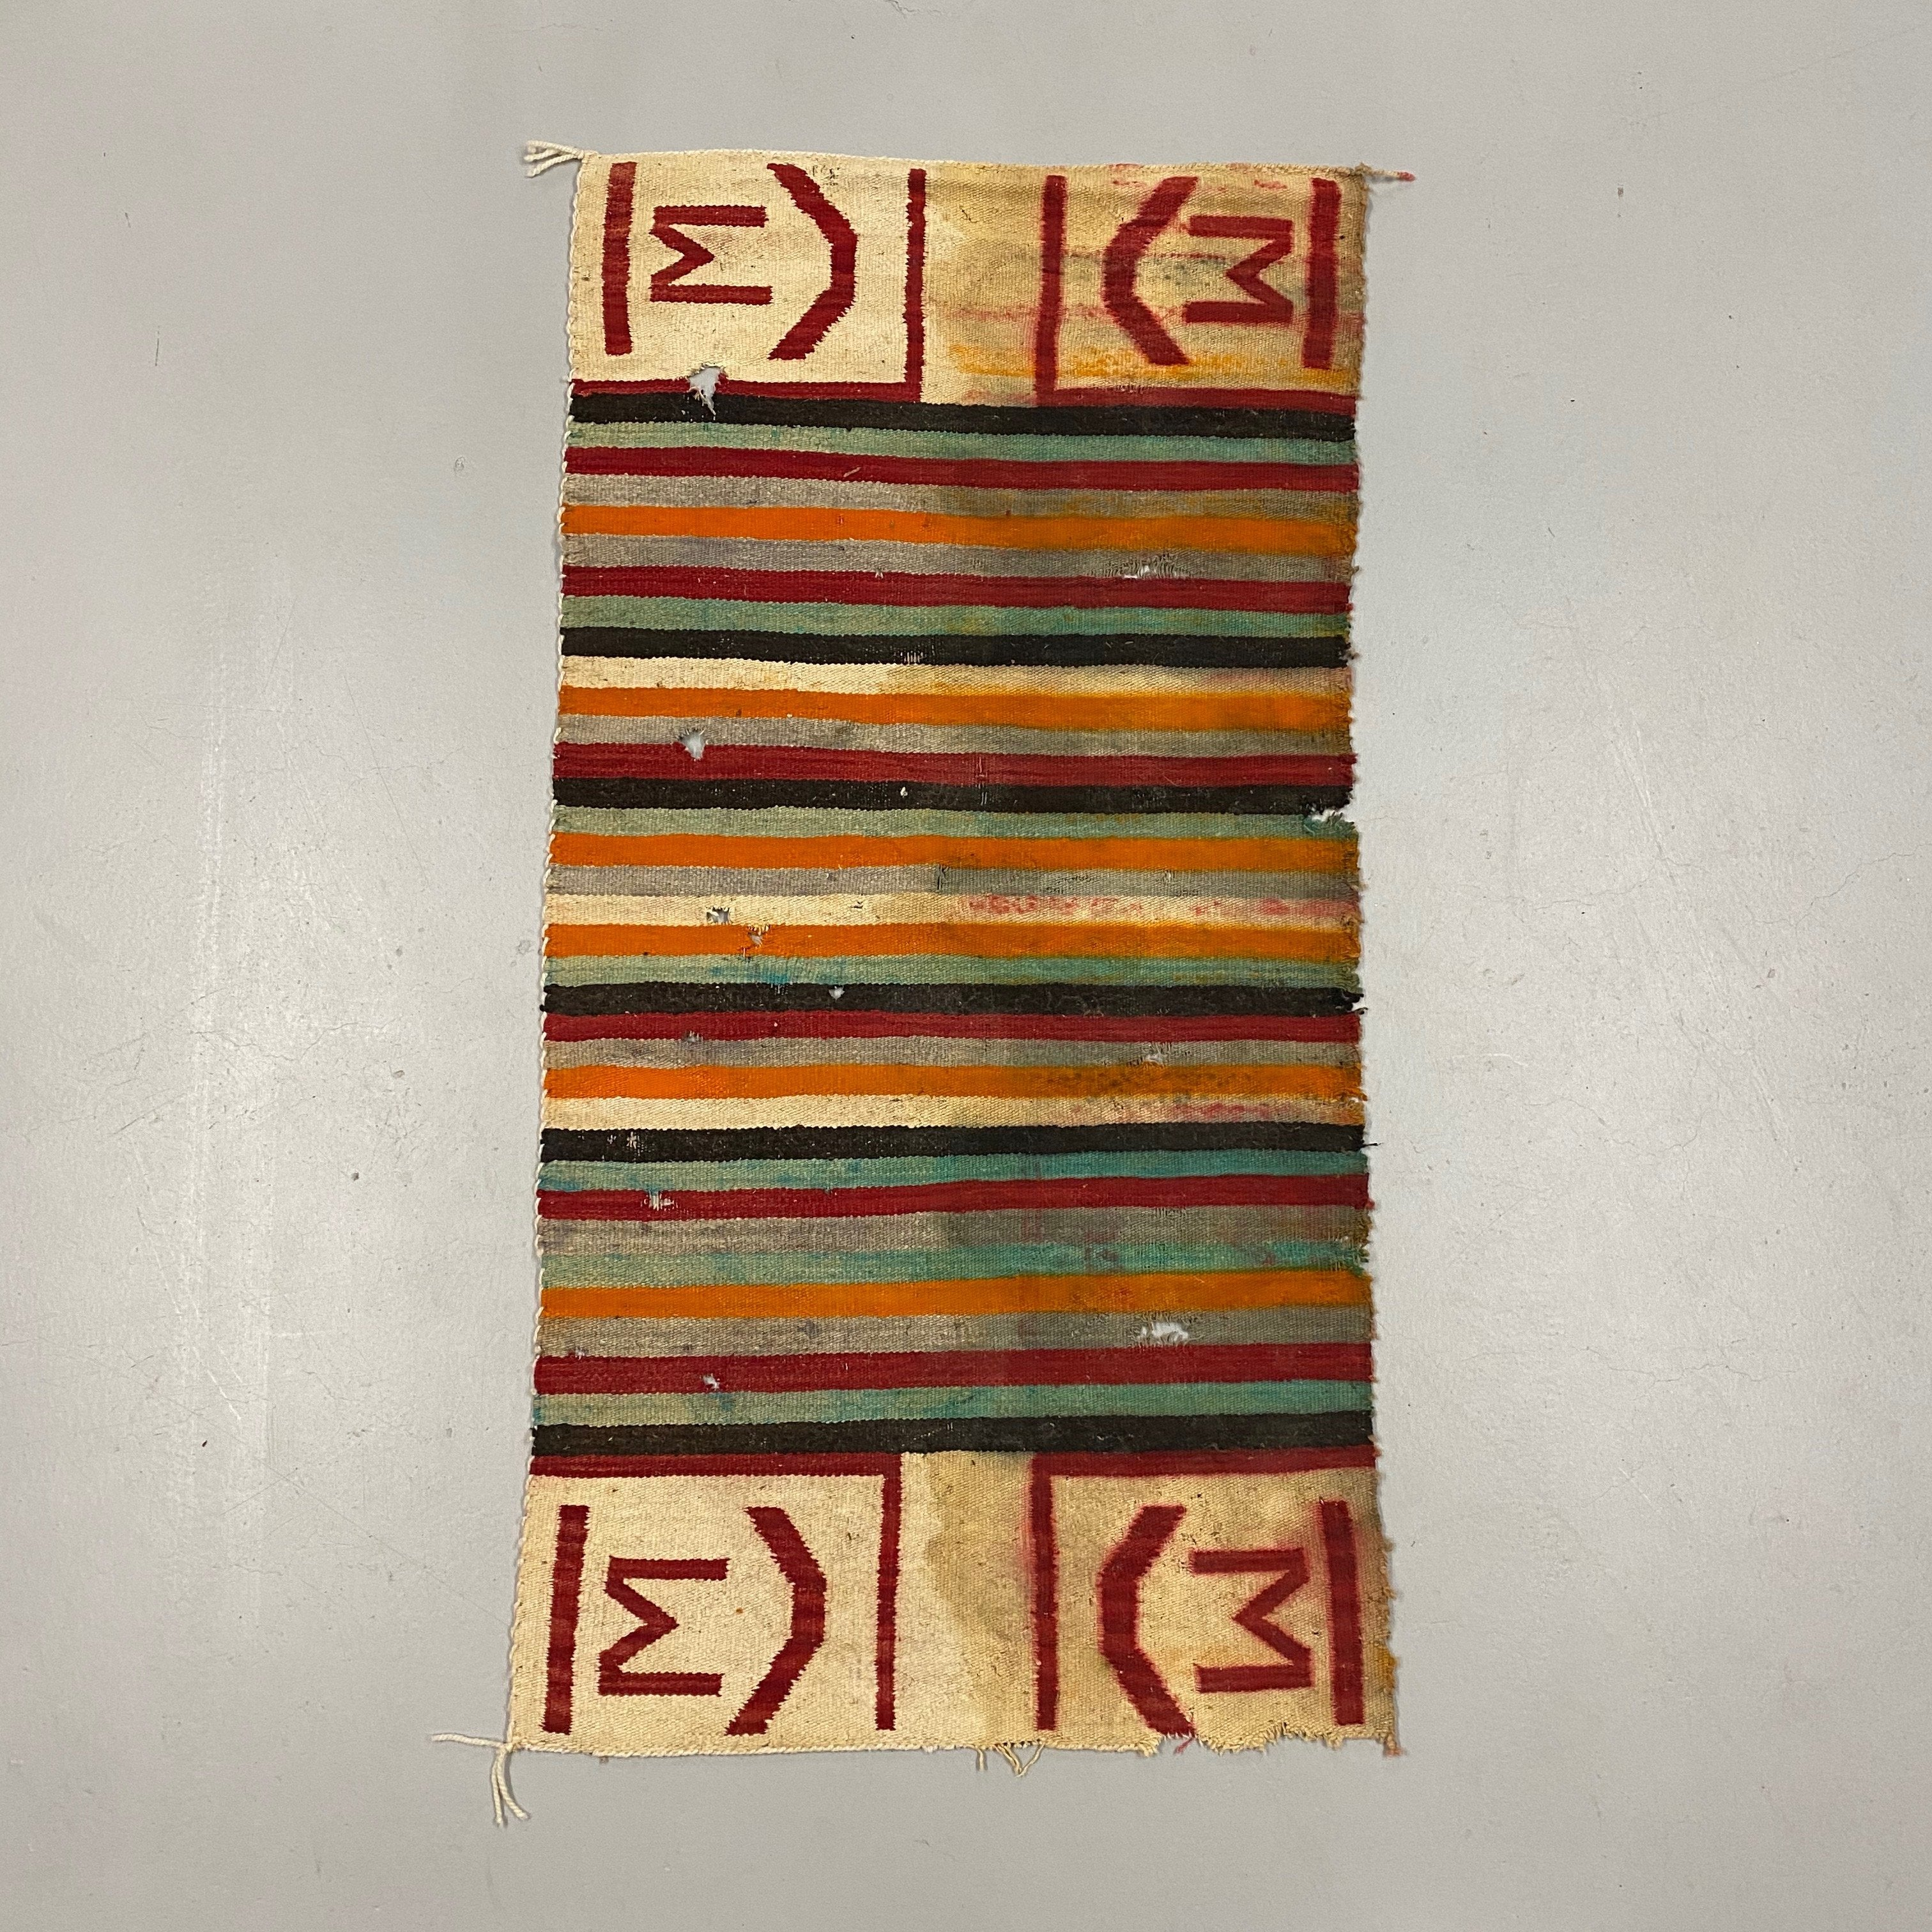 "1920s Navajo Rug with Ranch Marking - Antique Southwest Saddle Blanket - AS IS - Wall Hanging - 59"" x 30"" - Horizontal Color Designs"